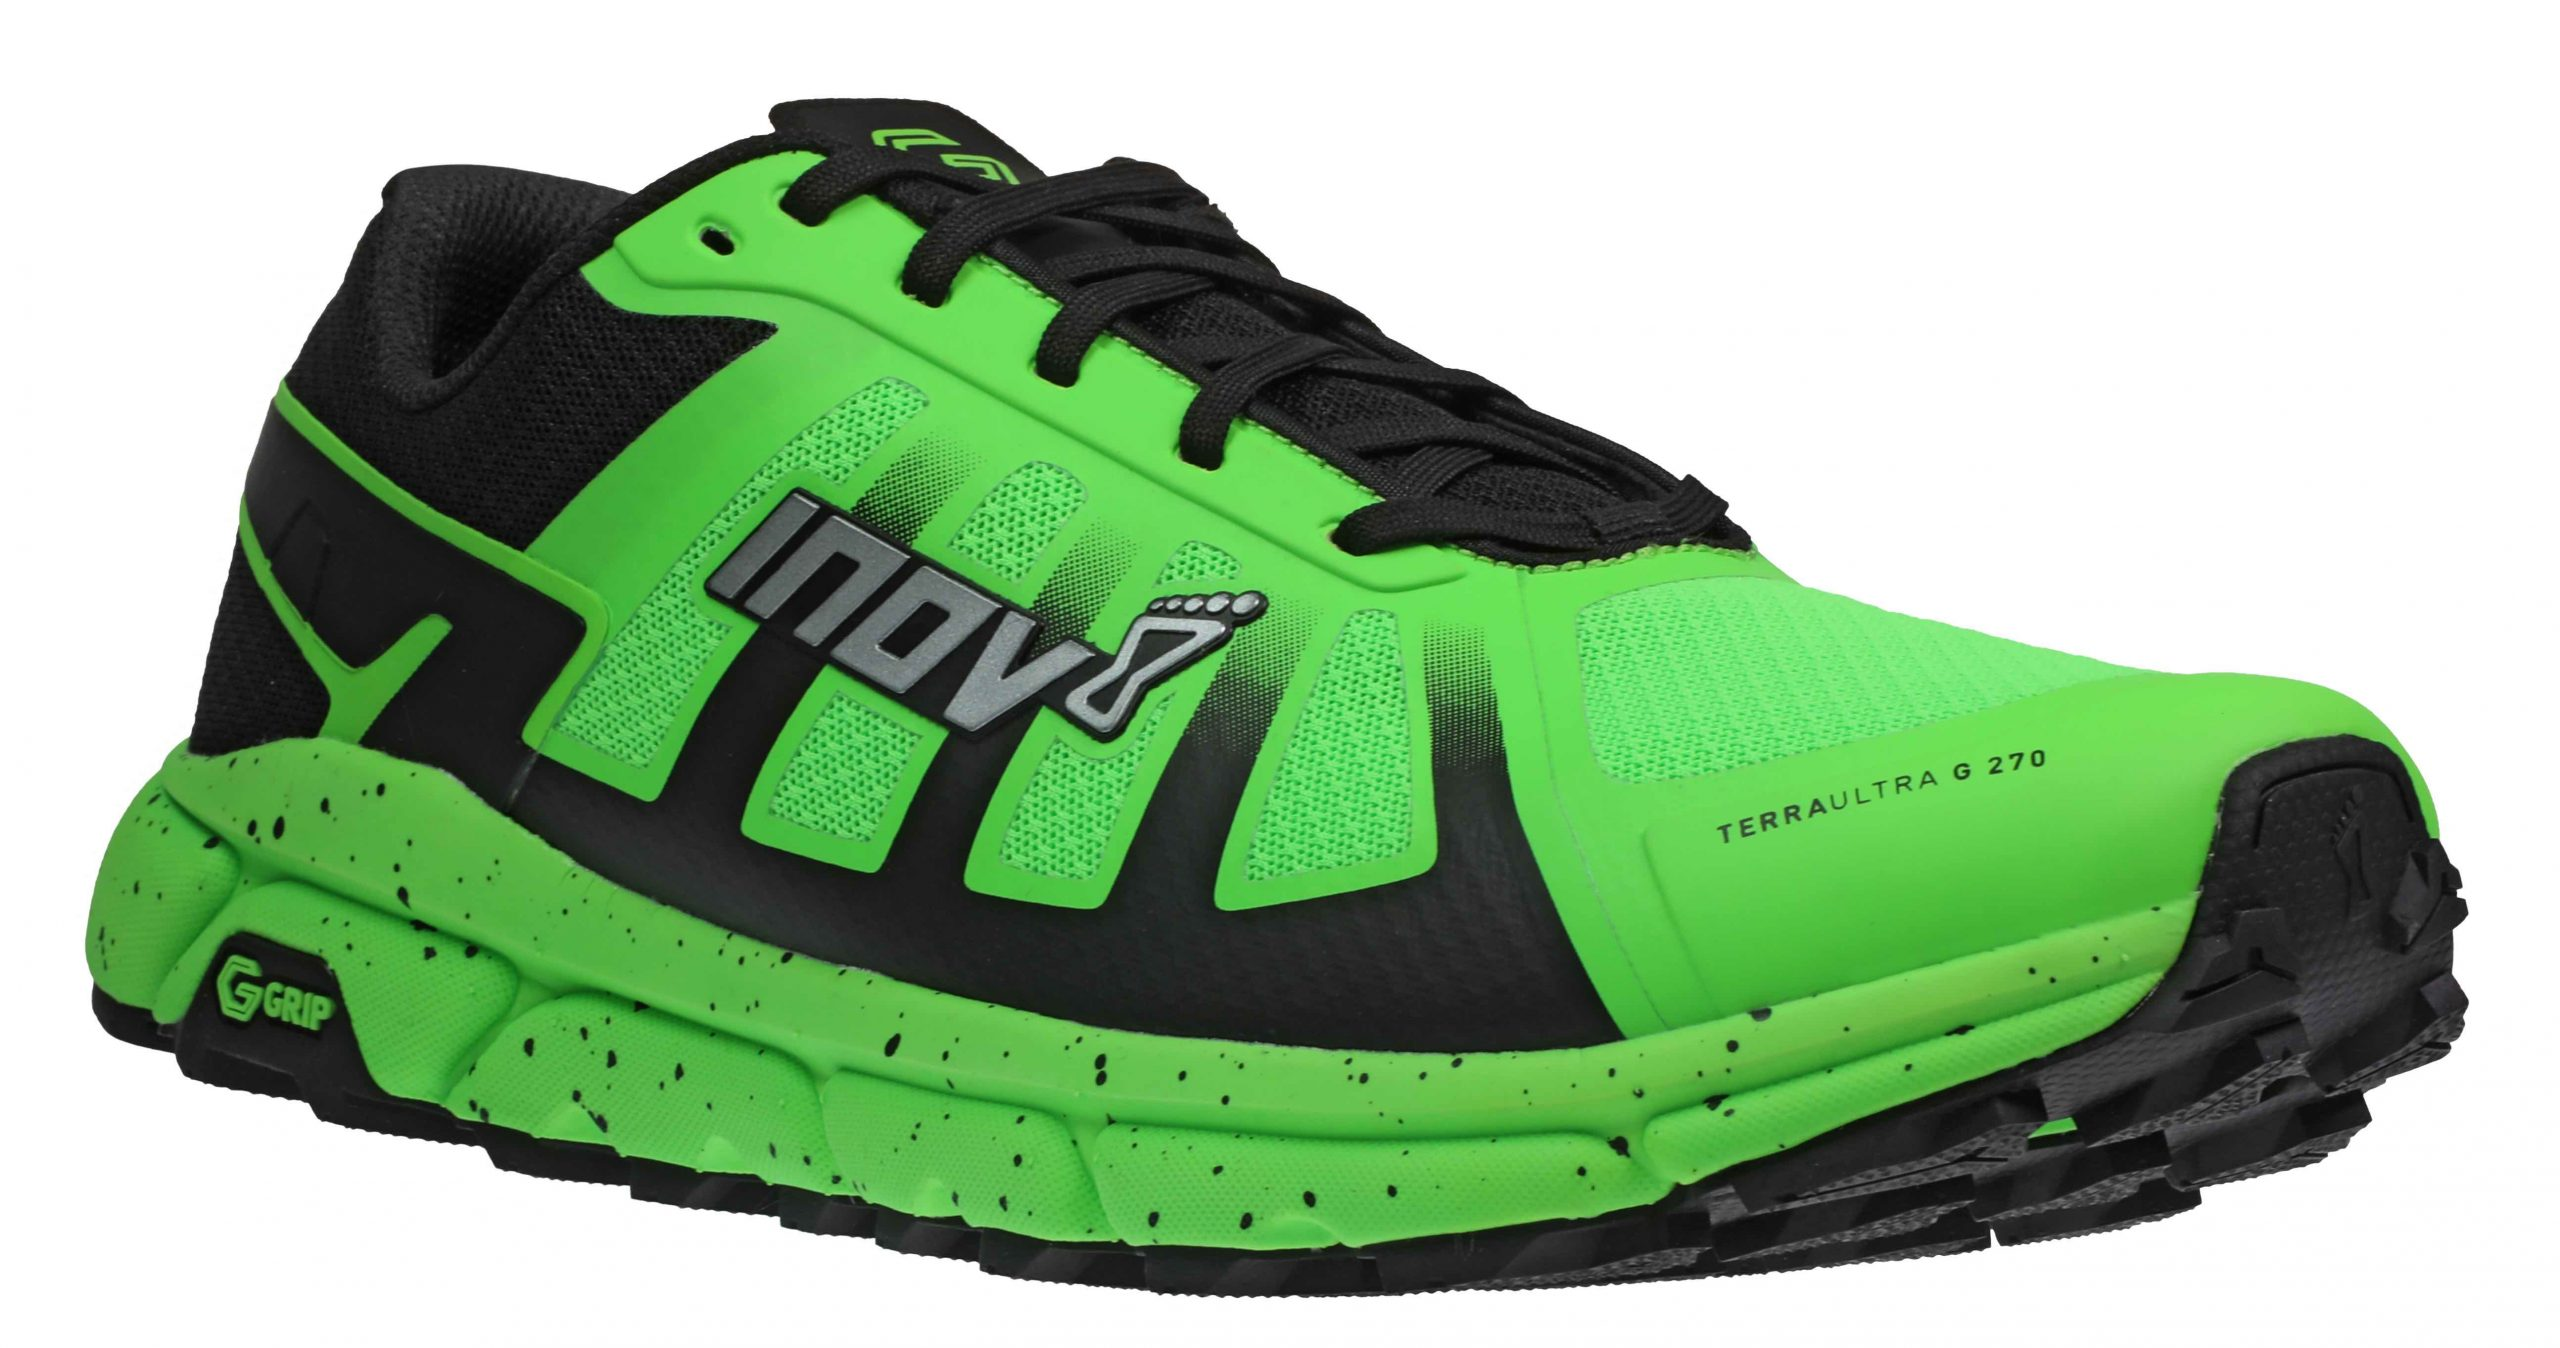 We take a first look at the Inov-8 Terraultra G 270